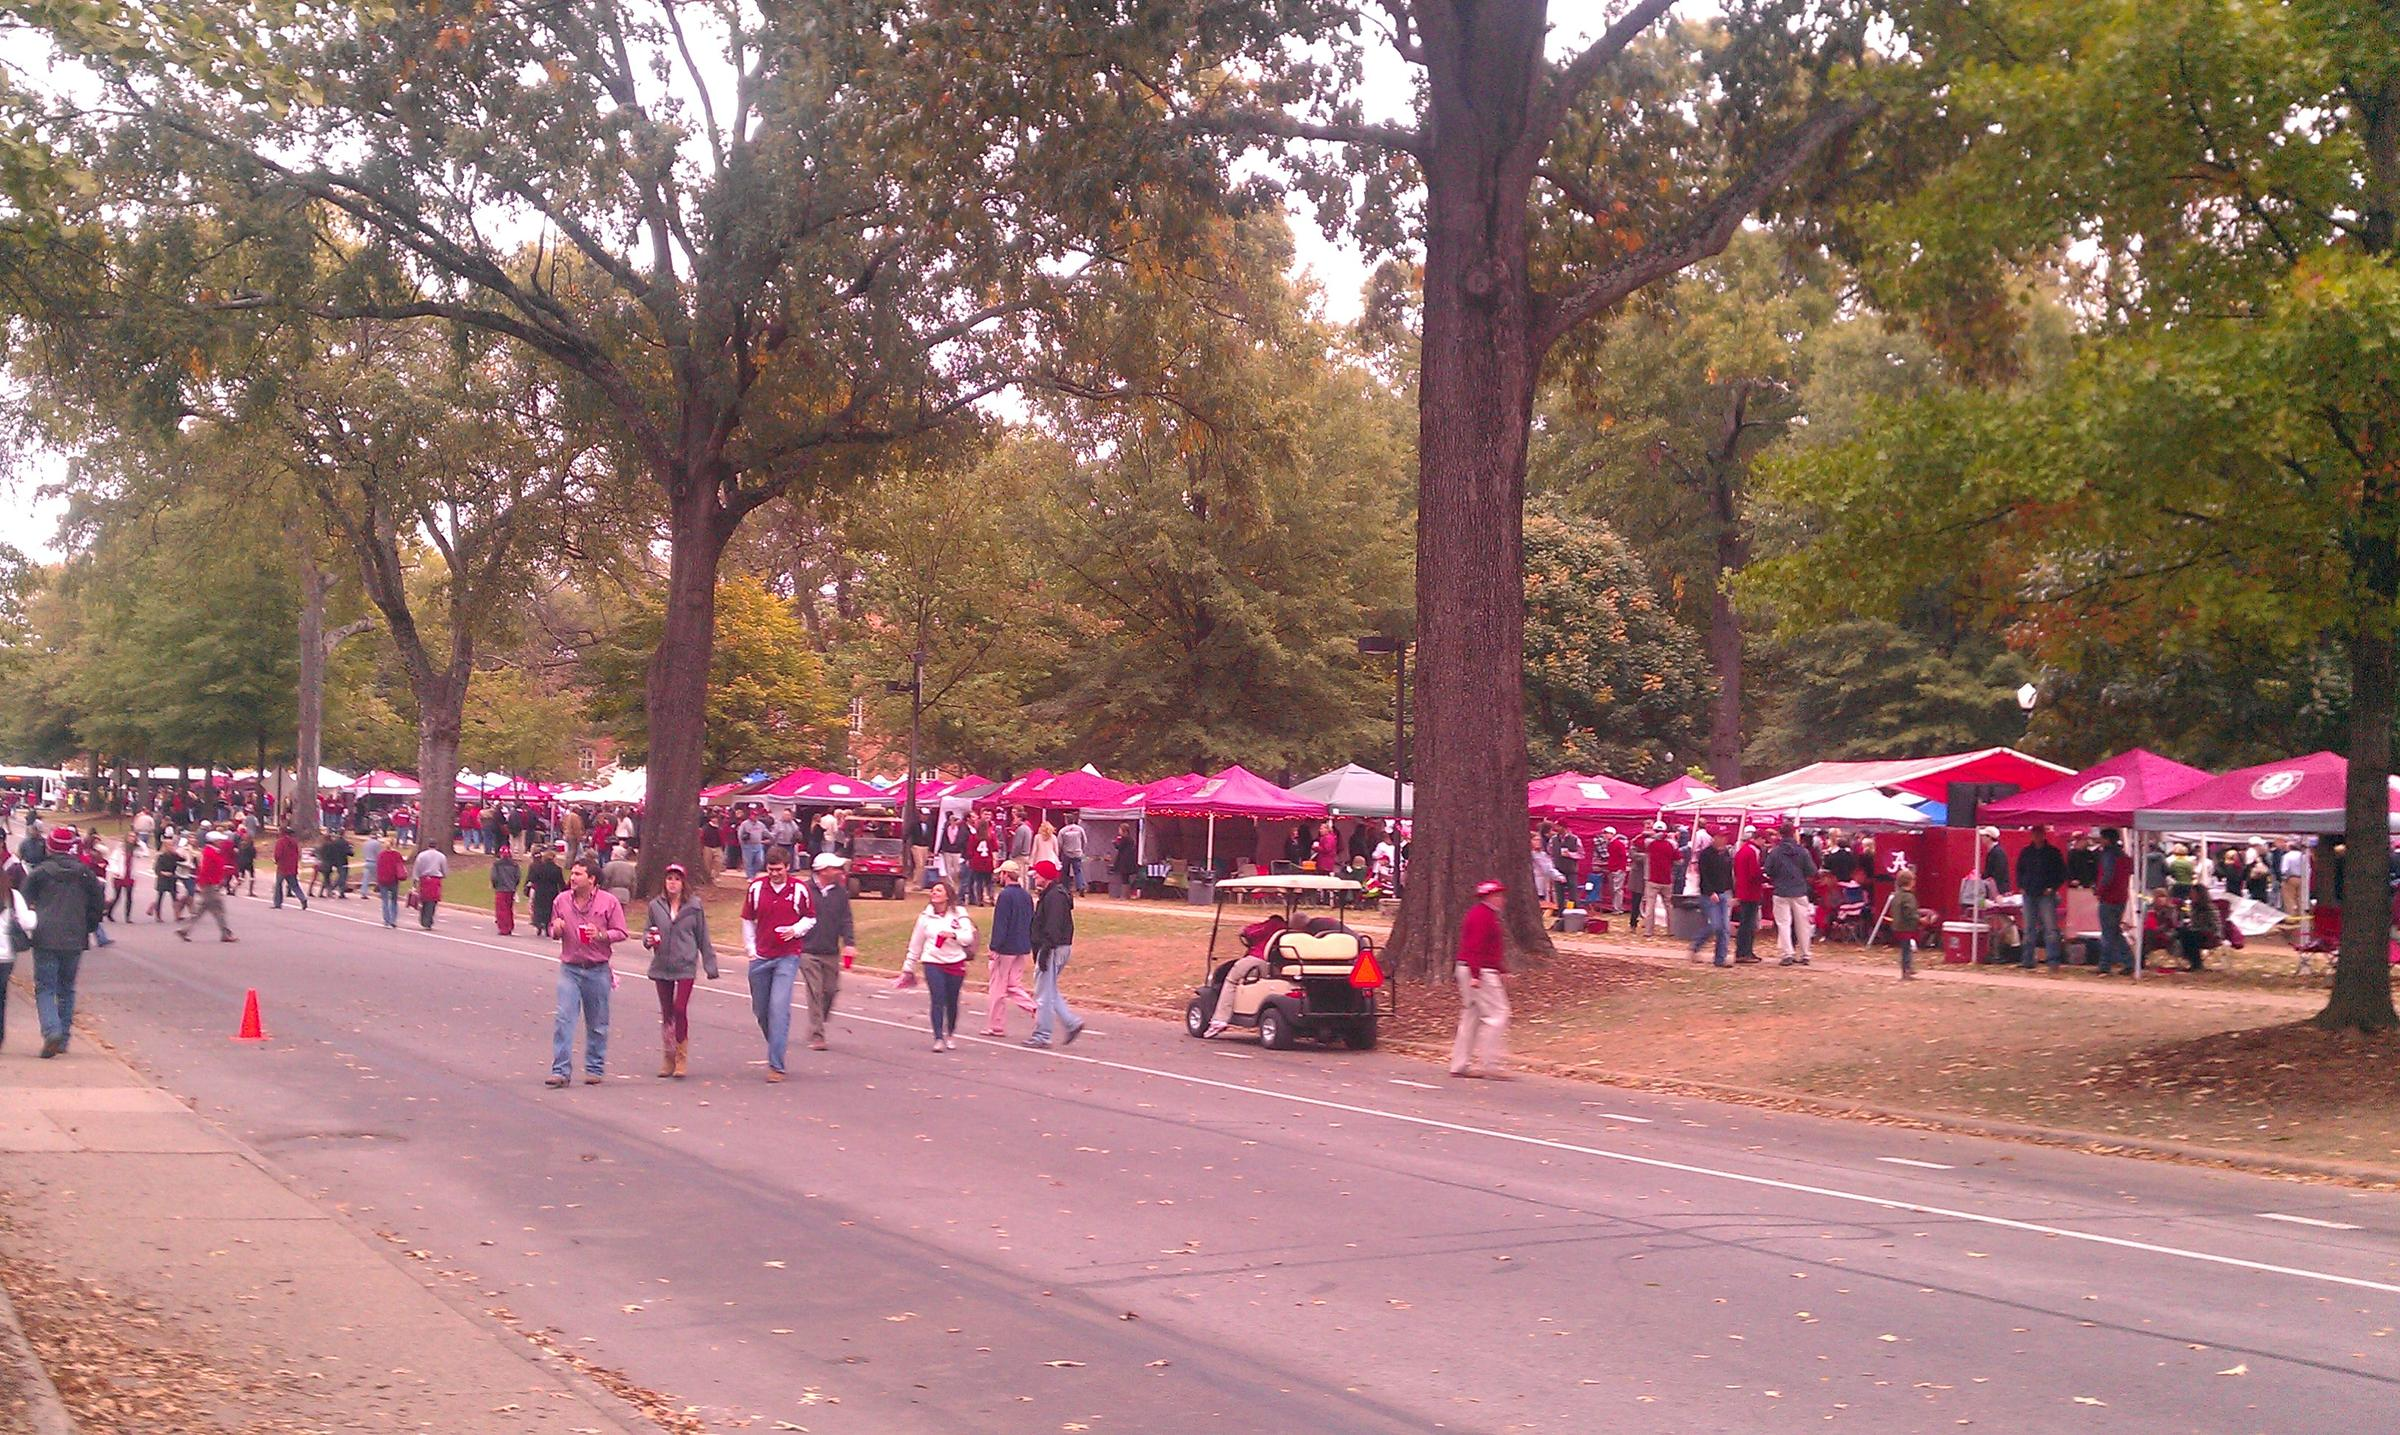 Tailgaters at University of Alabama Homecoming : alabama tailgate tent - memphite.com